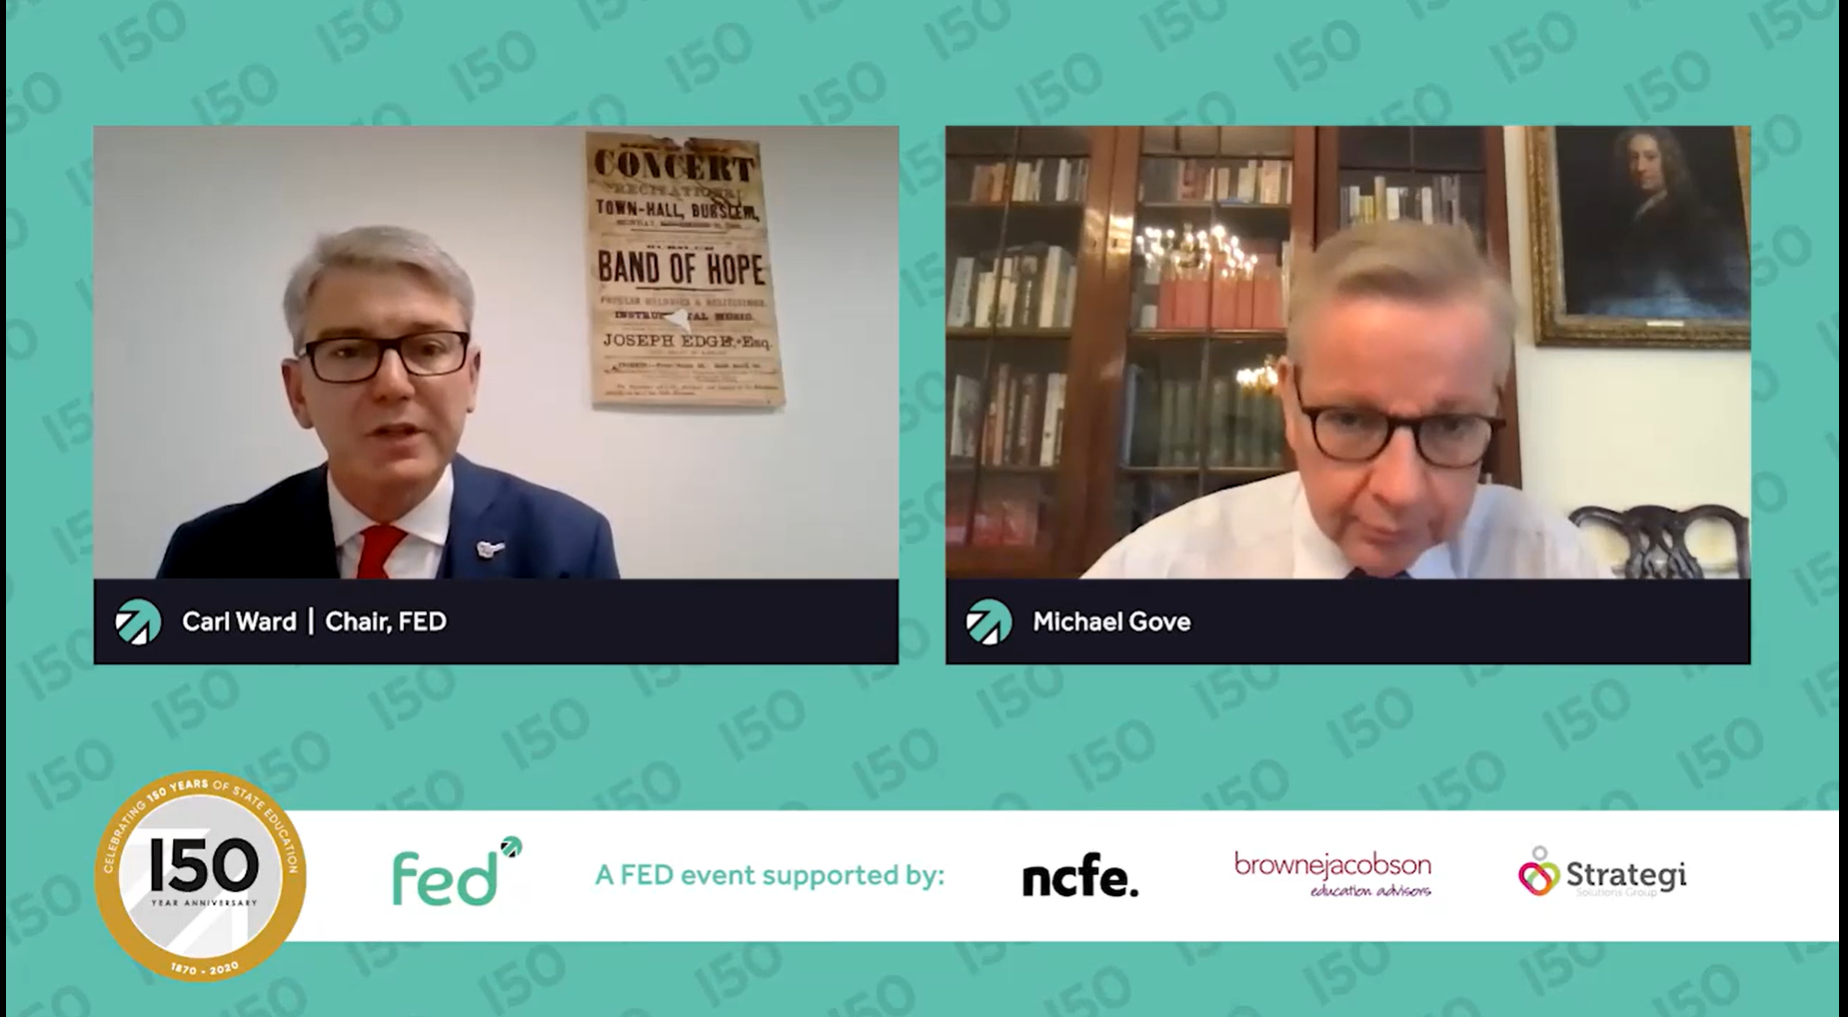 Carl Ward 'in conversation with' Michael Gove